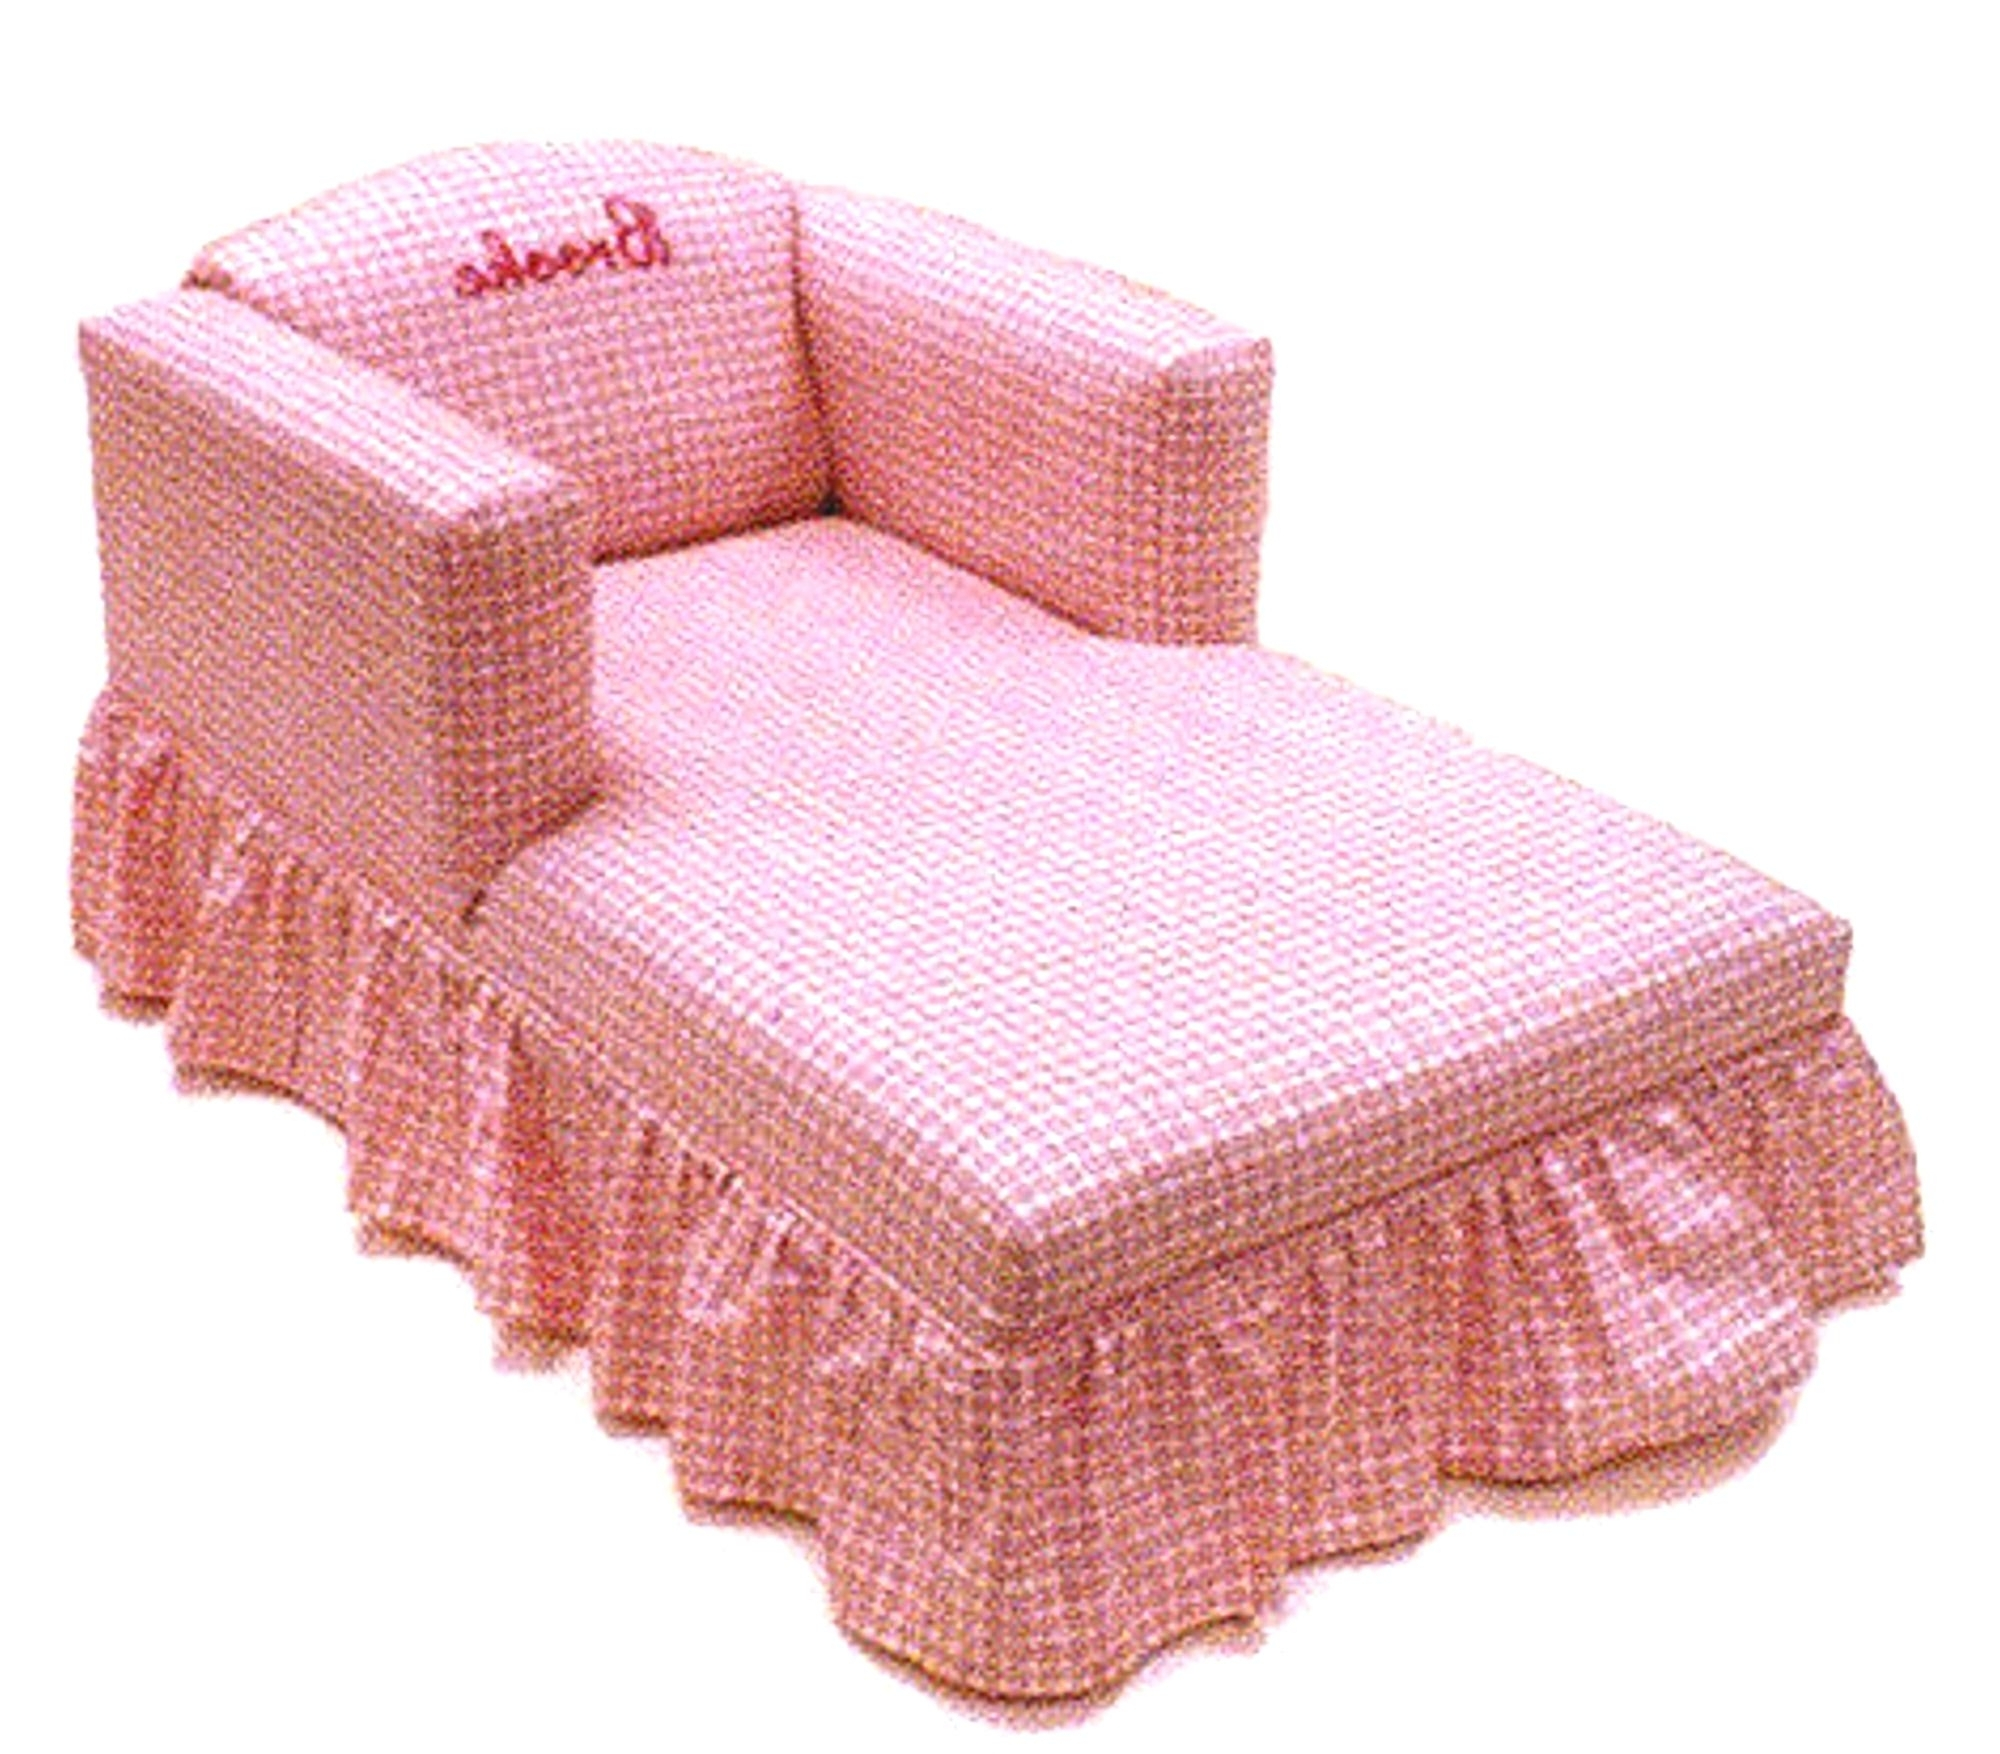 Pink Chaise Lounge Chair Hot Pink Chaise Lounge Chairs Kids Chaise Throughout Popular Hot Pink Chaise Lounge Chairs (View 14 of 15)